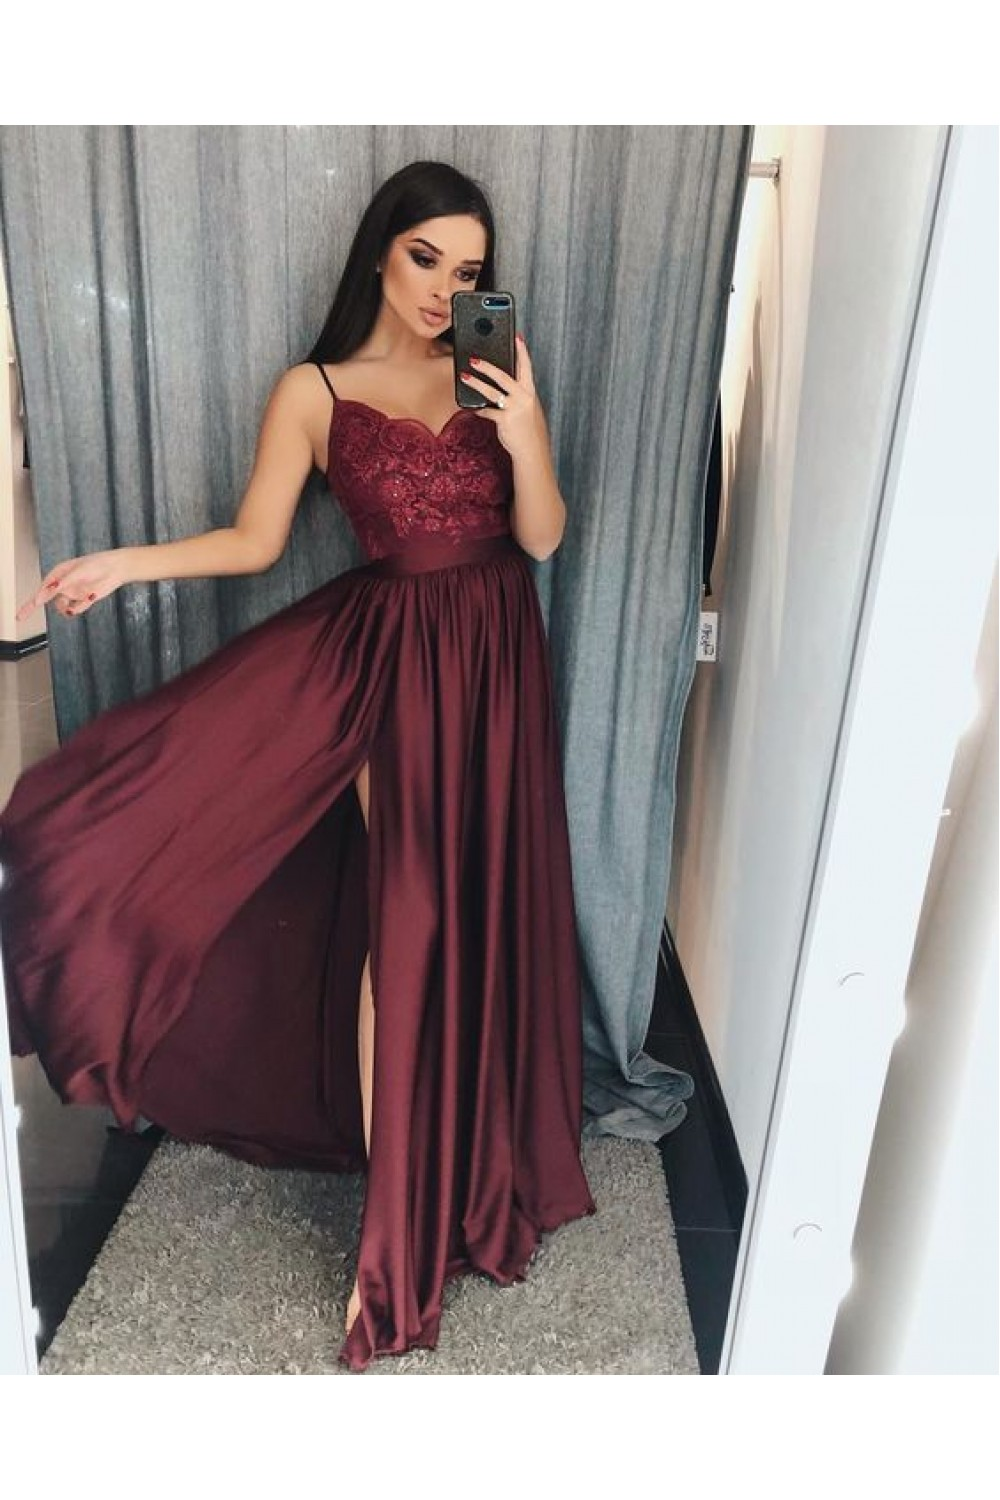 A Line V Neck Lace Long Prom Dresses Evening Gowns 601378 Burgundy Prom Dress Red Bridesmaid Dresses Prom Dresses [ 1500 x 1000 Pixel ]